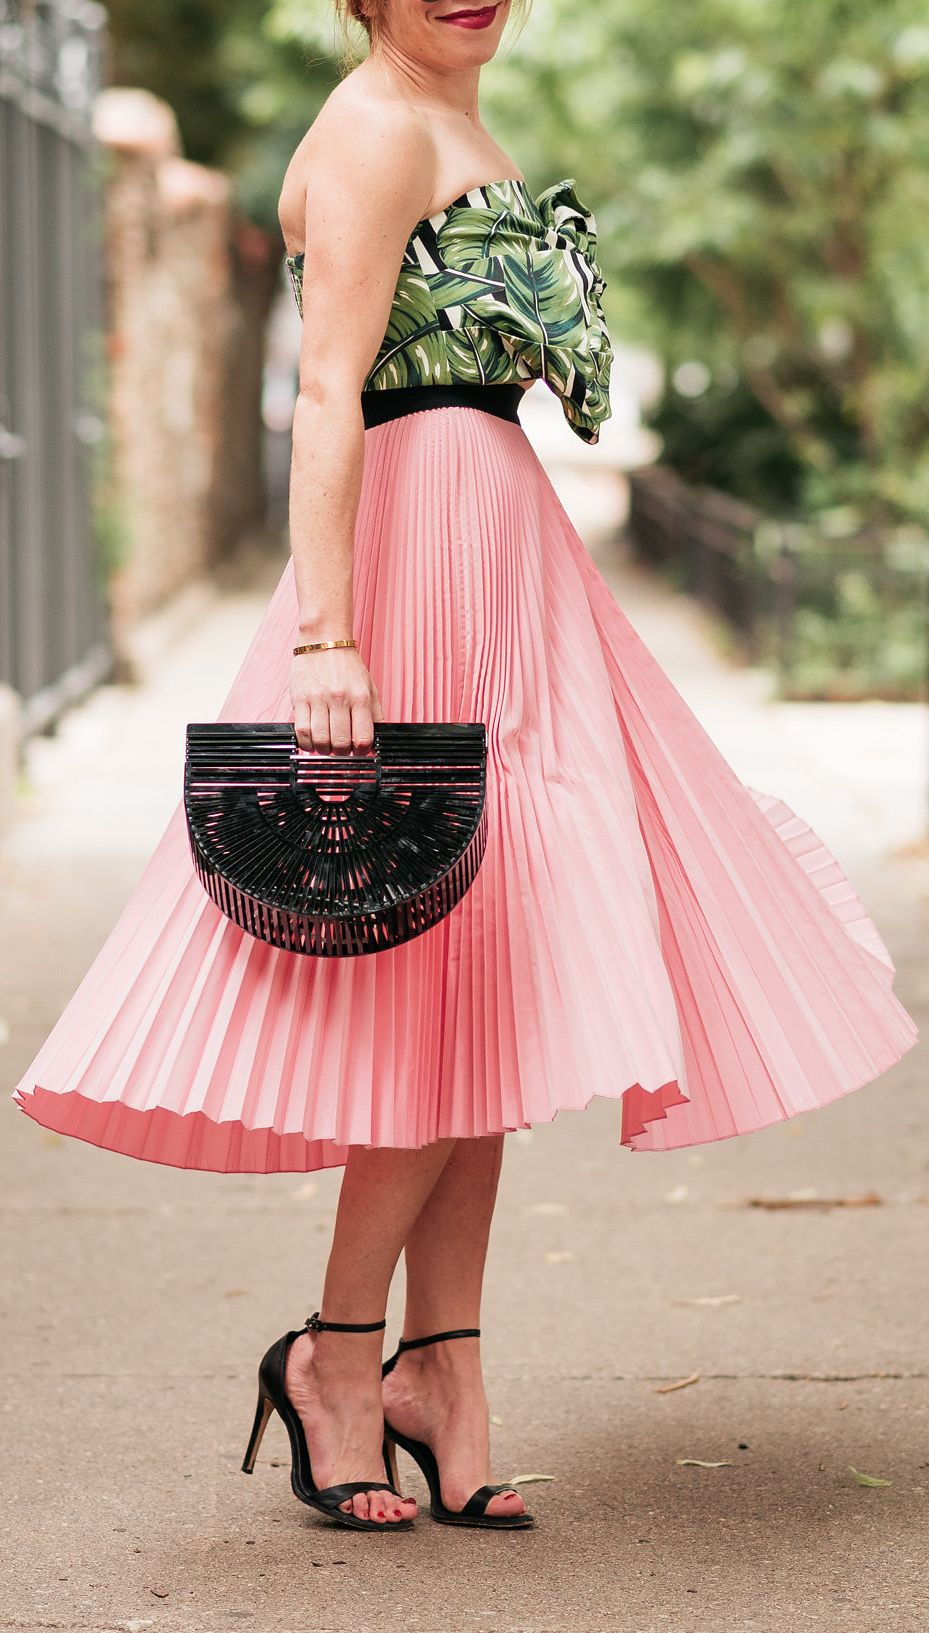 Pink pleated skirt + leaf print tie front top